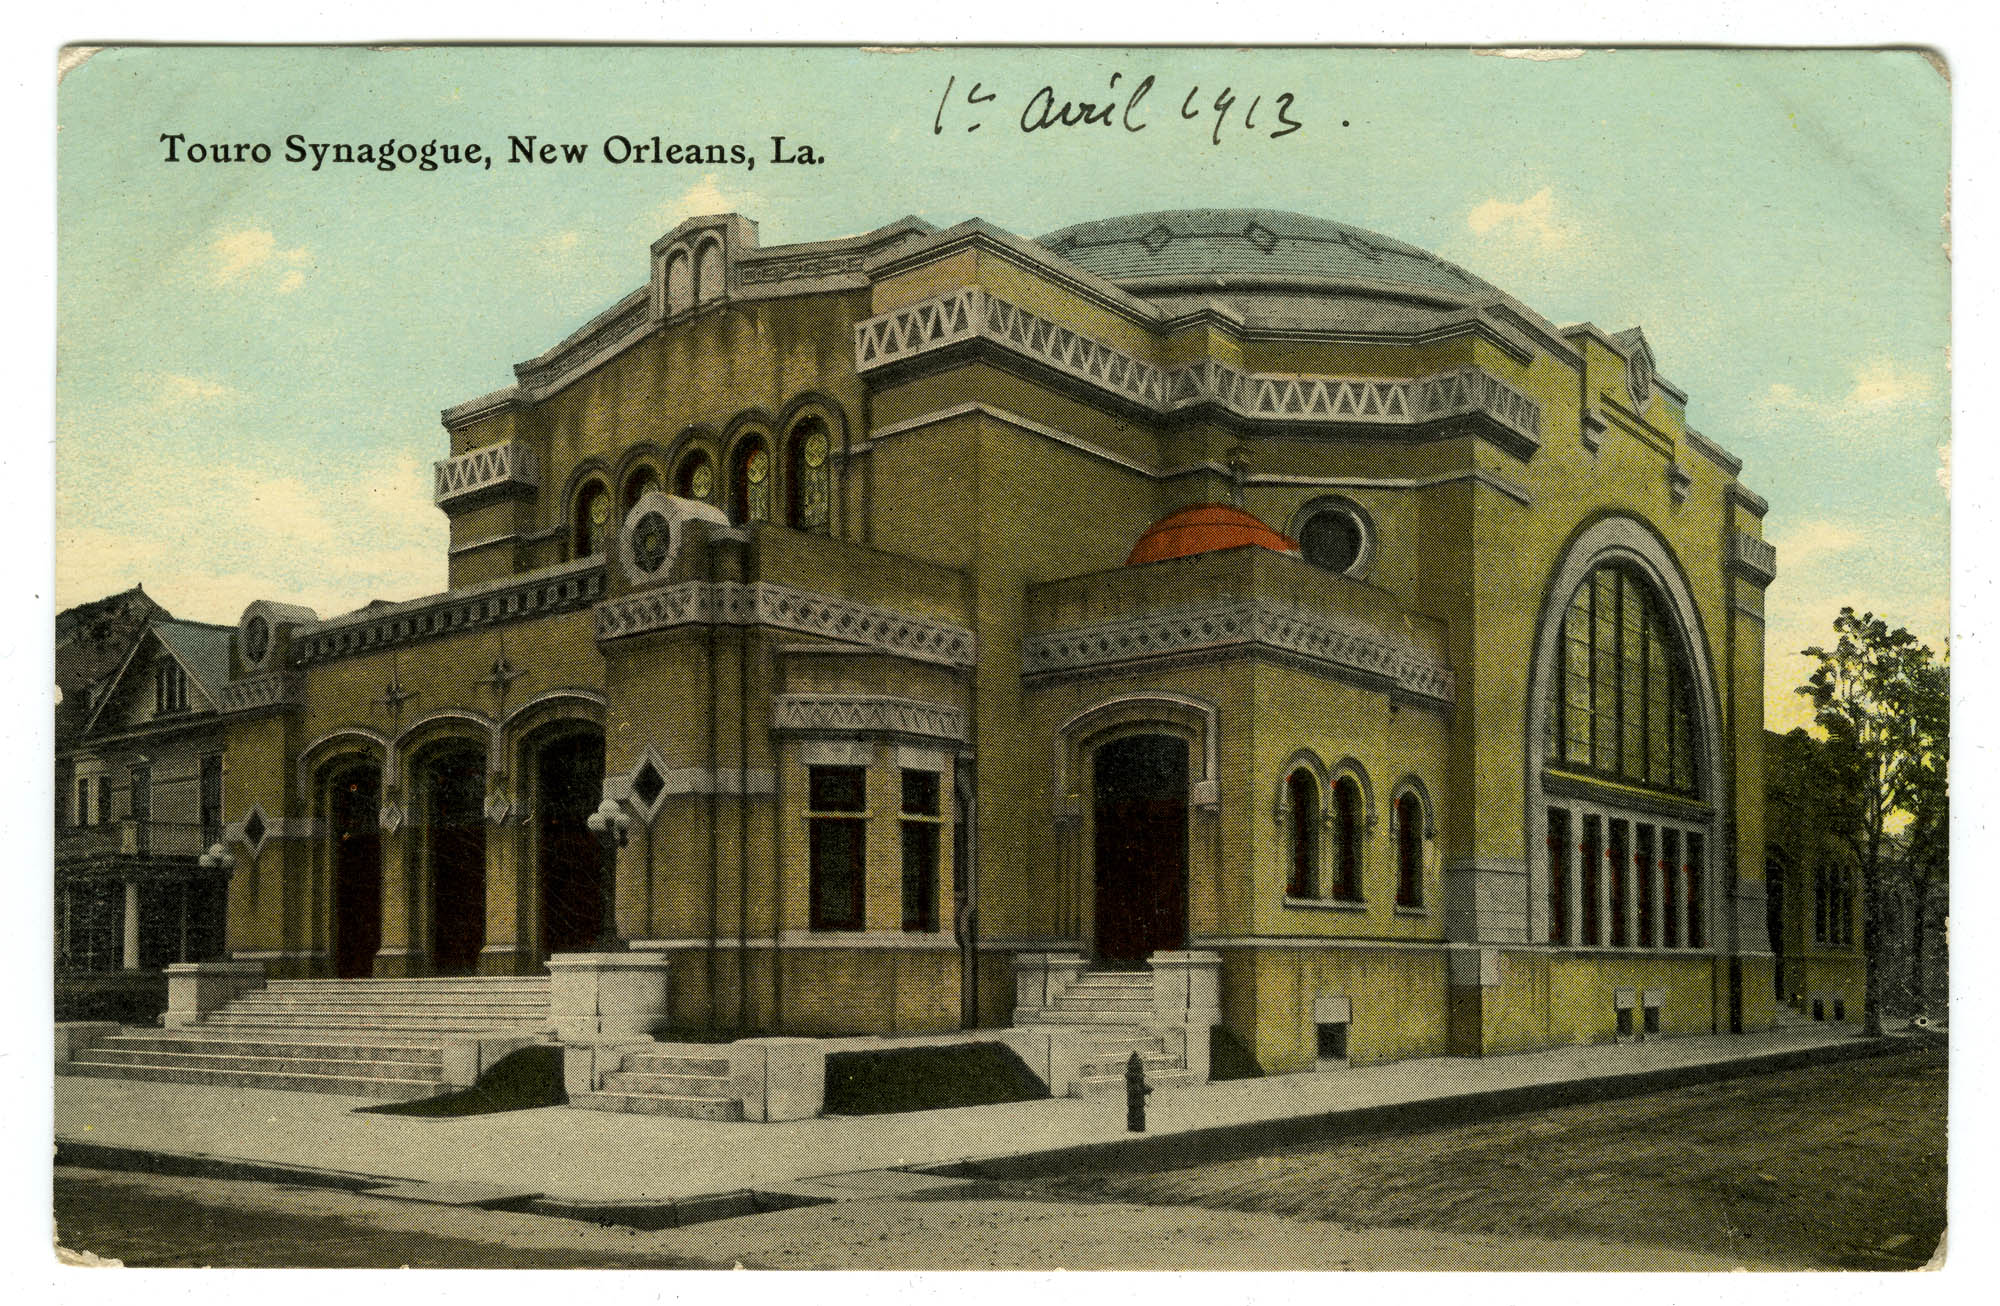 Touro Synagogue, New Orleans, La.